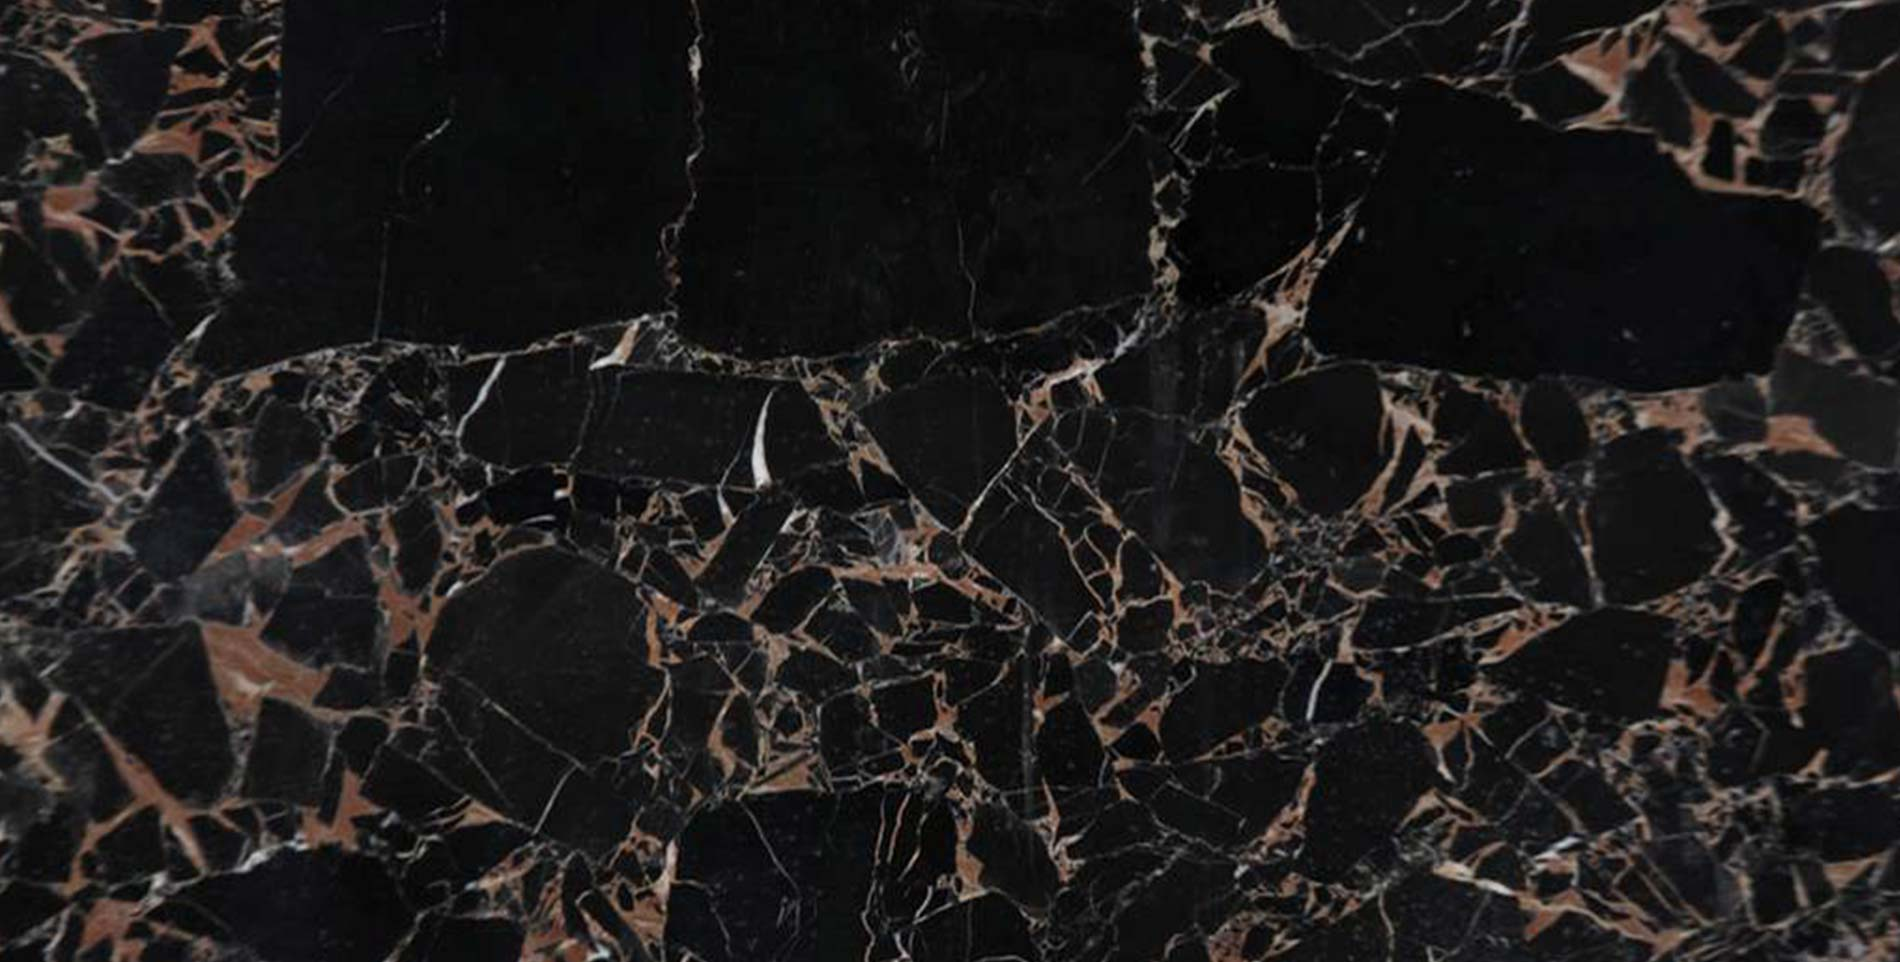 Golden Portoro Marble Supplier Golden Portoro Marble